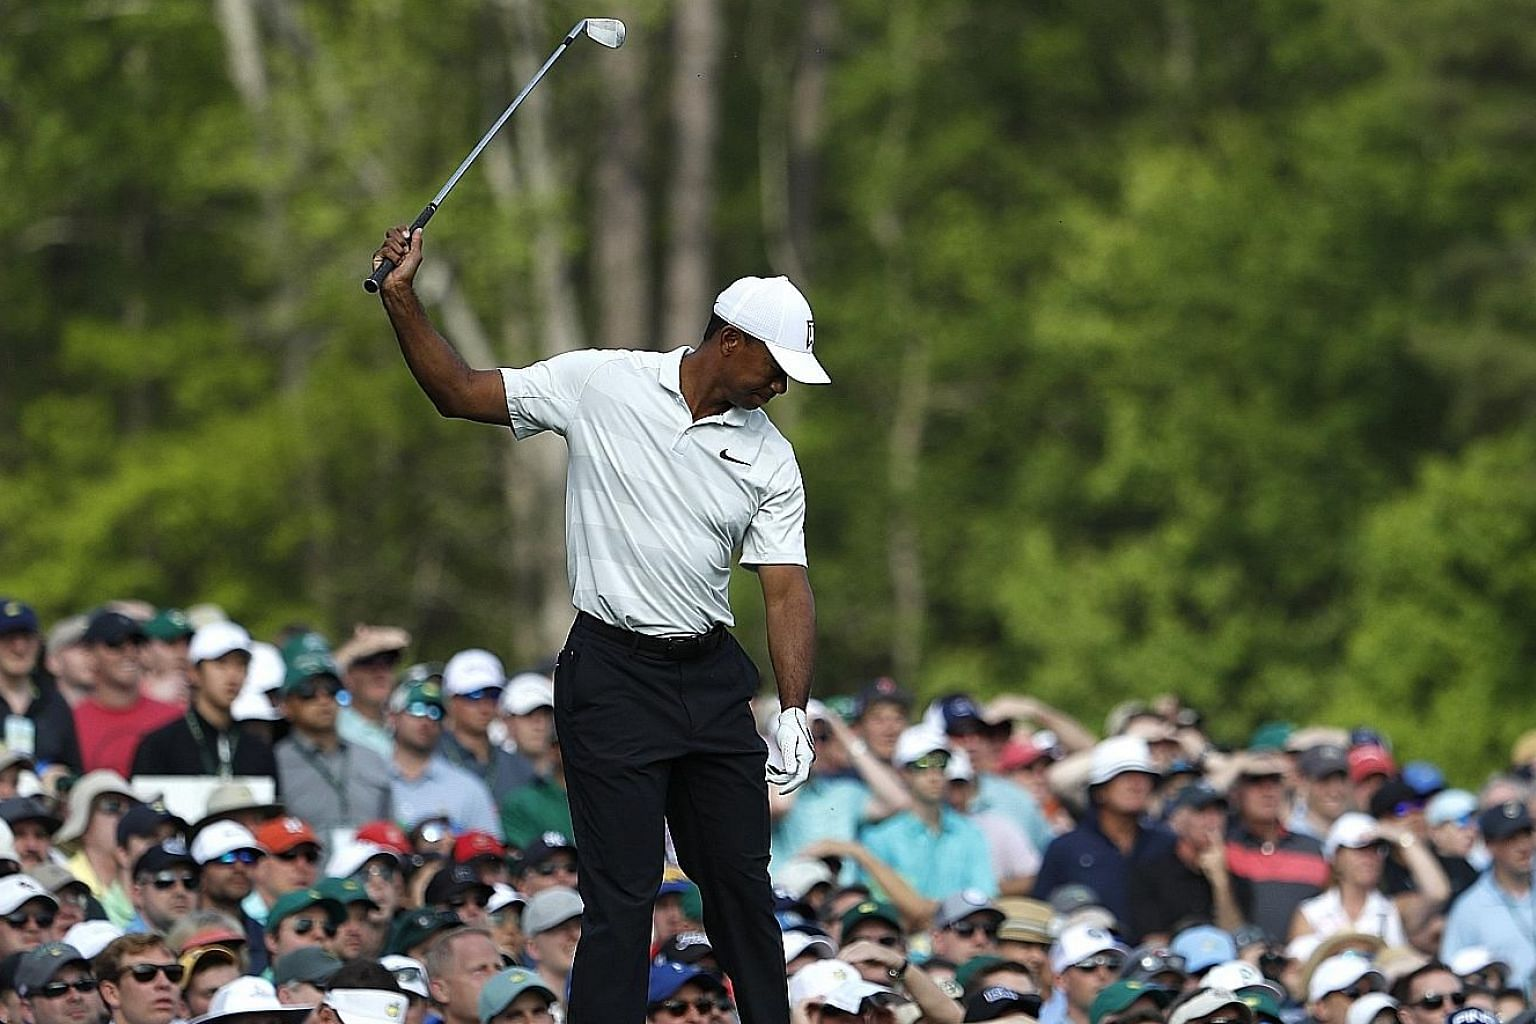 Tiger Woods venting his frustration after hitting a shot off the 12th tee during the second round at the Augusta National Golf Club on Friday. The four-time Masters winner, who is returning to form after recent back problems, chose to dwell on the br